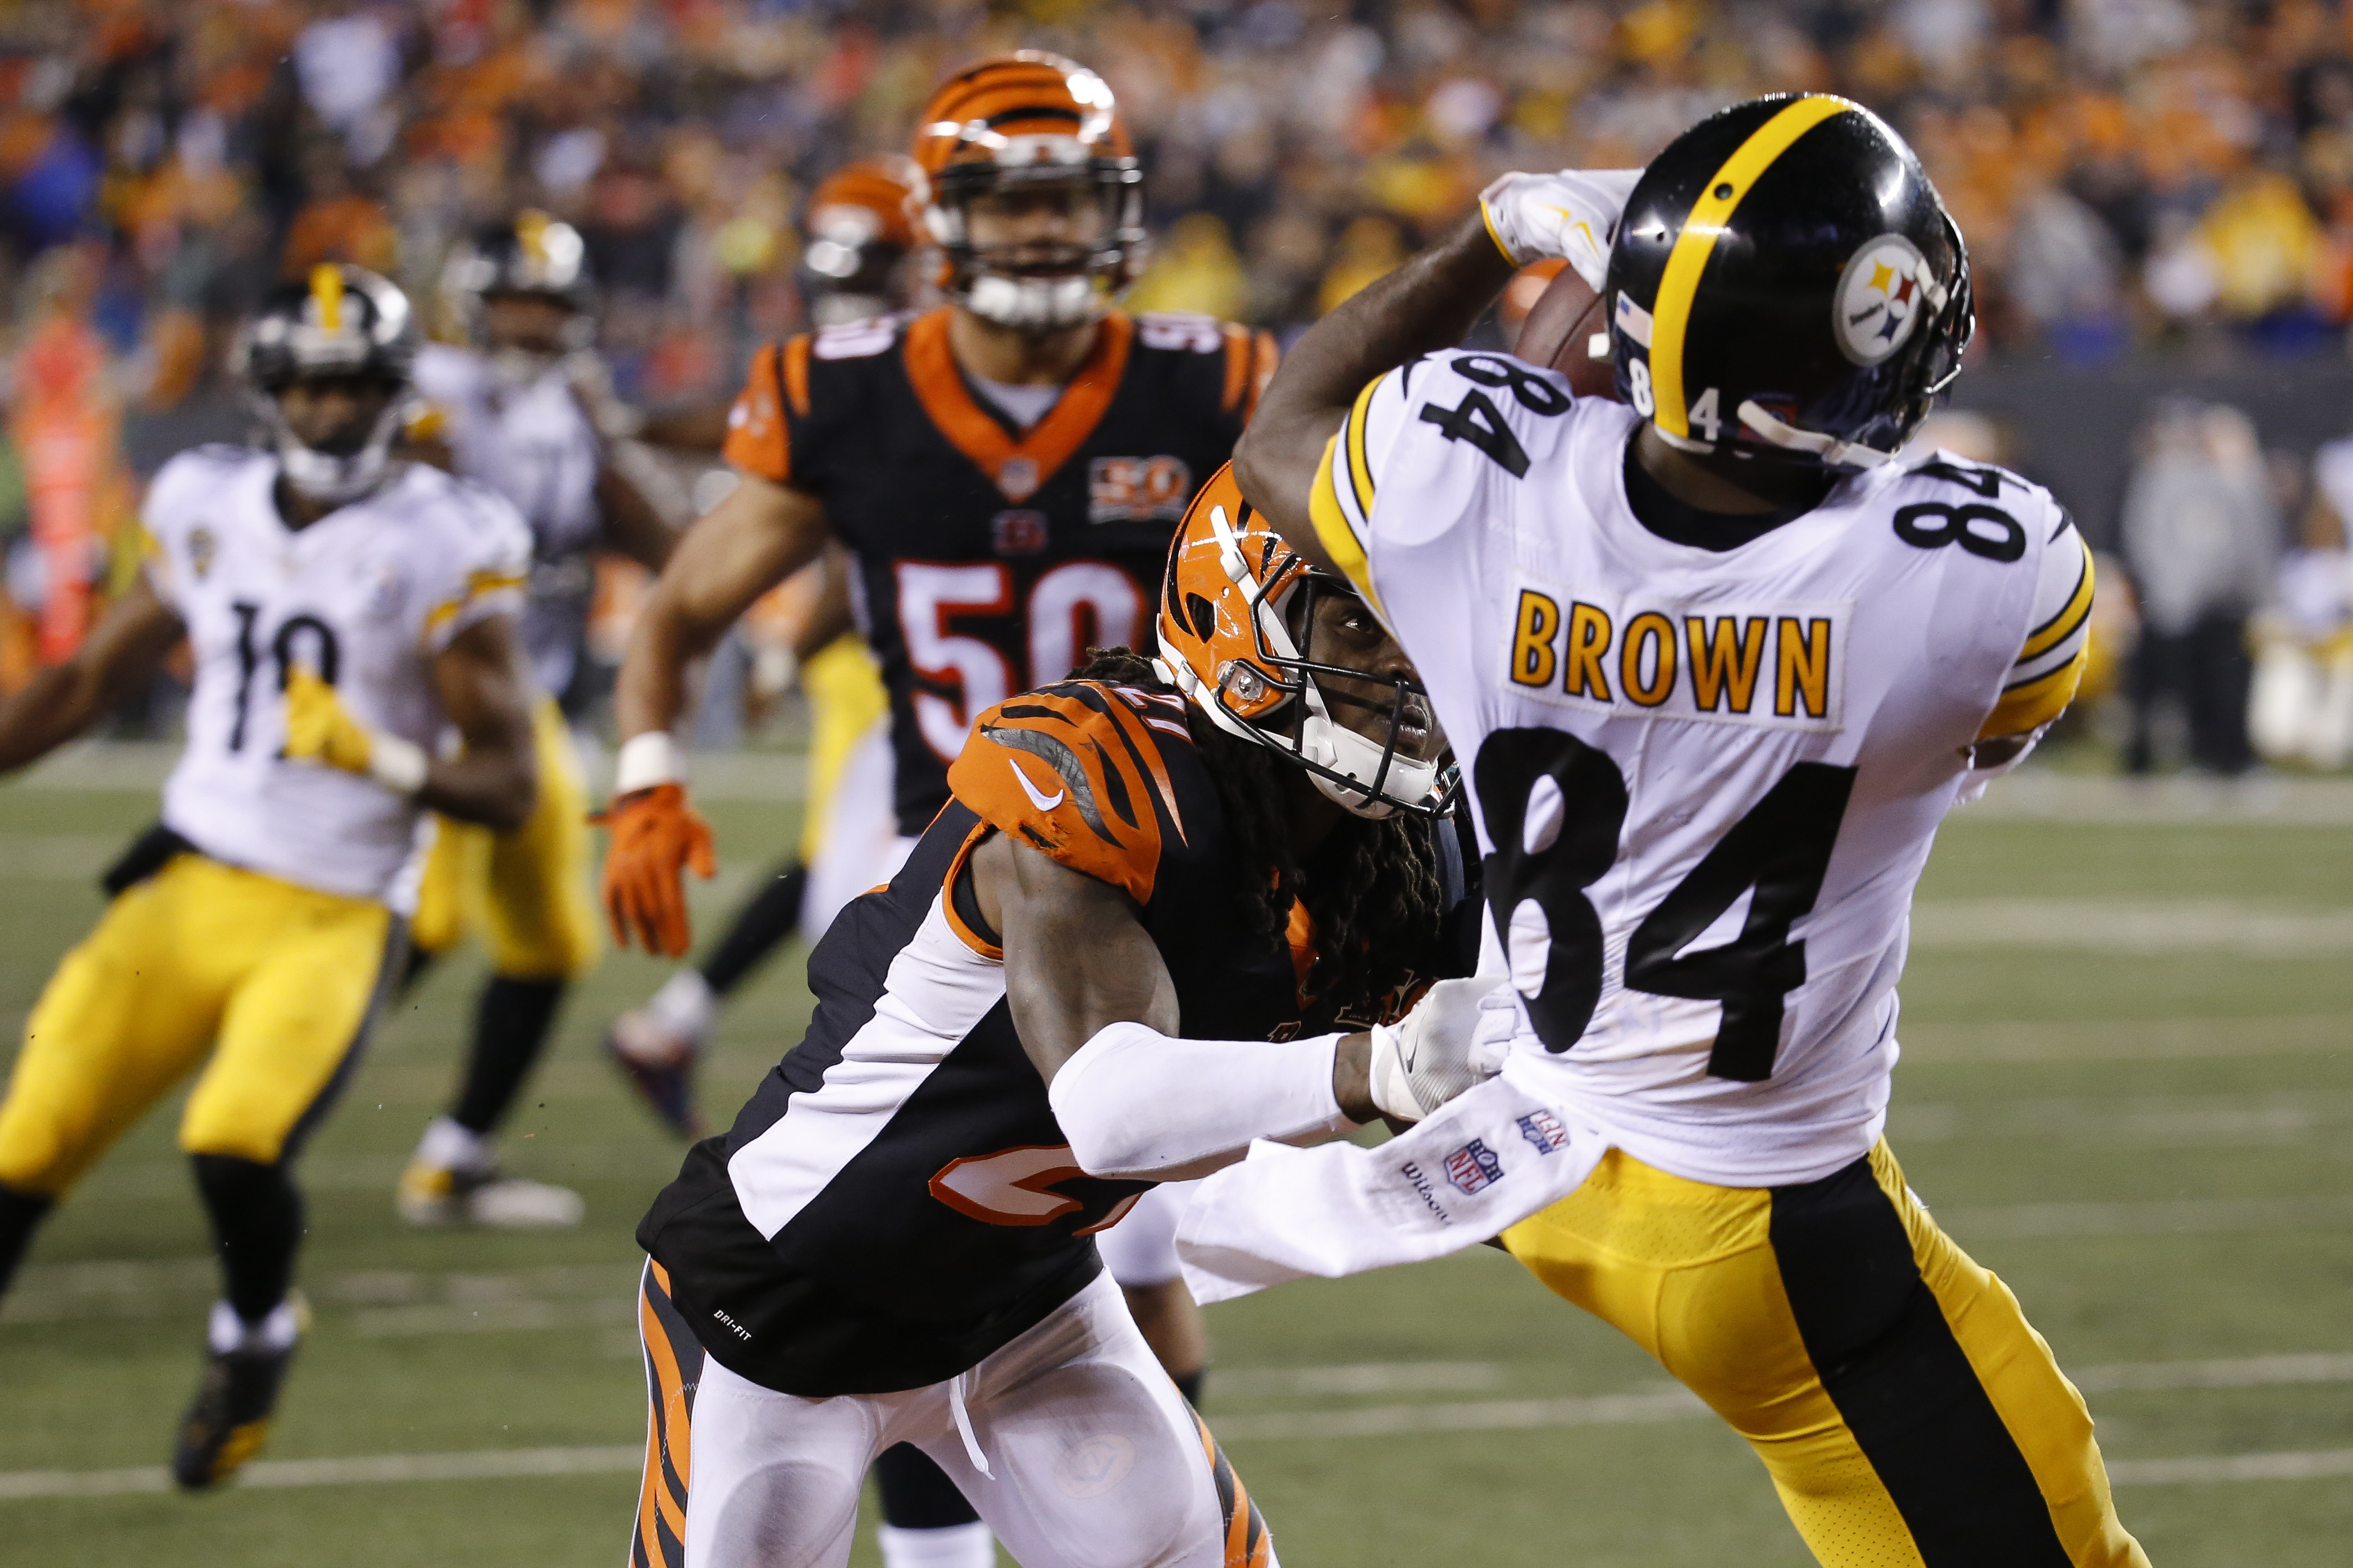 Pittsburgh Steelers wide receiver Antonio Brown (84) catches a touchdown pass against Cincinnati Bengals cornerback Dre Kirkpatrick, center, in the second half of an NFL football game, Monday, Dec. 4, 2017, in Cincinnati. (AP Photo/Frank Victores)